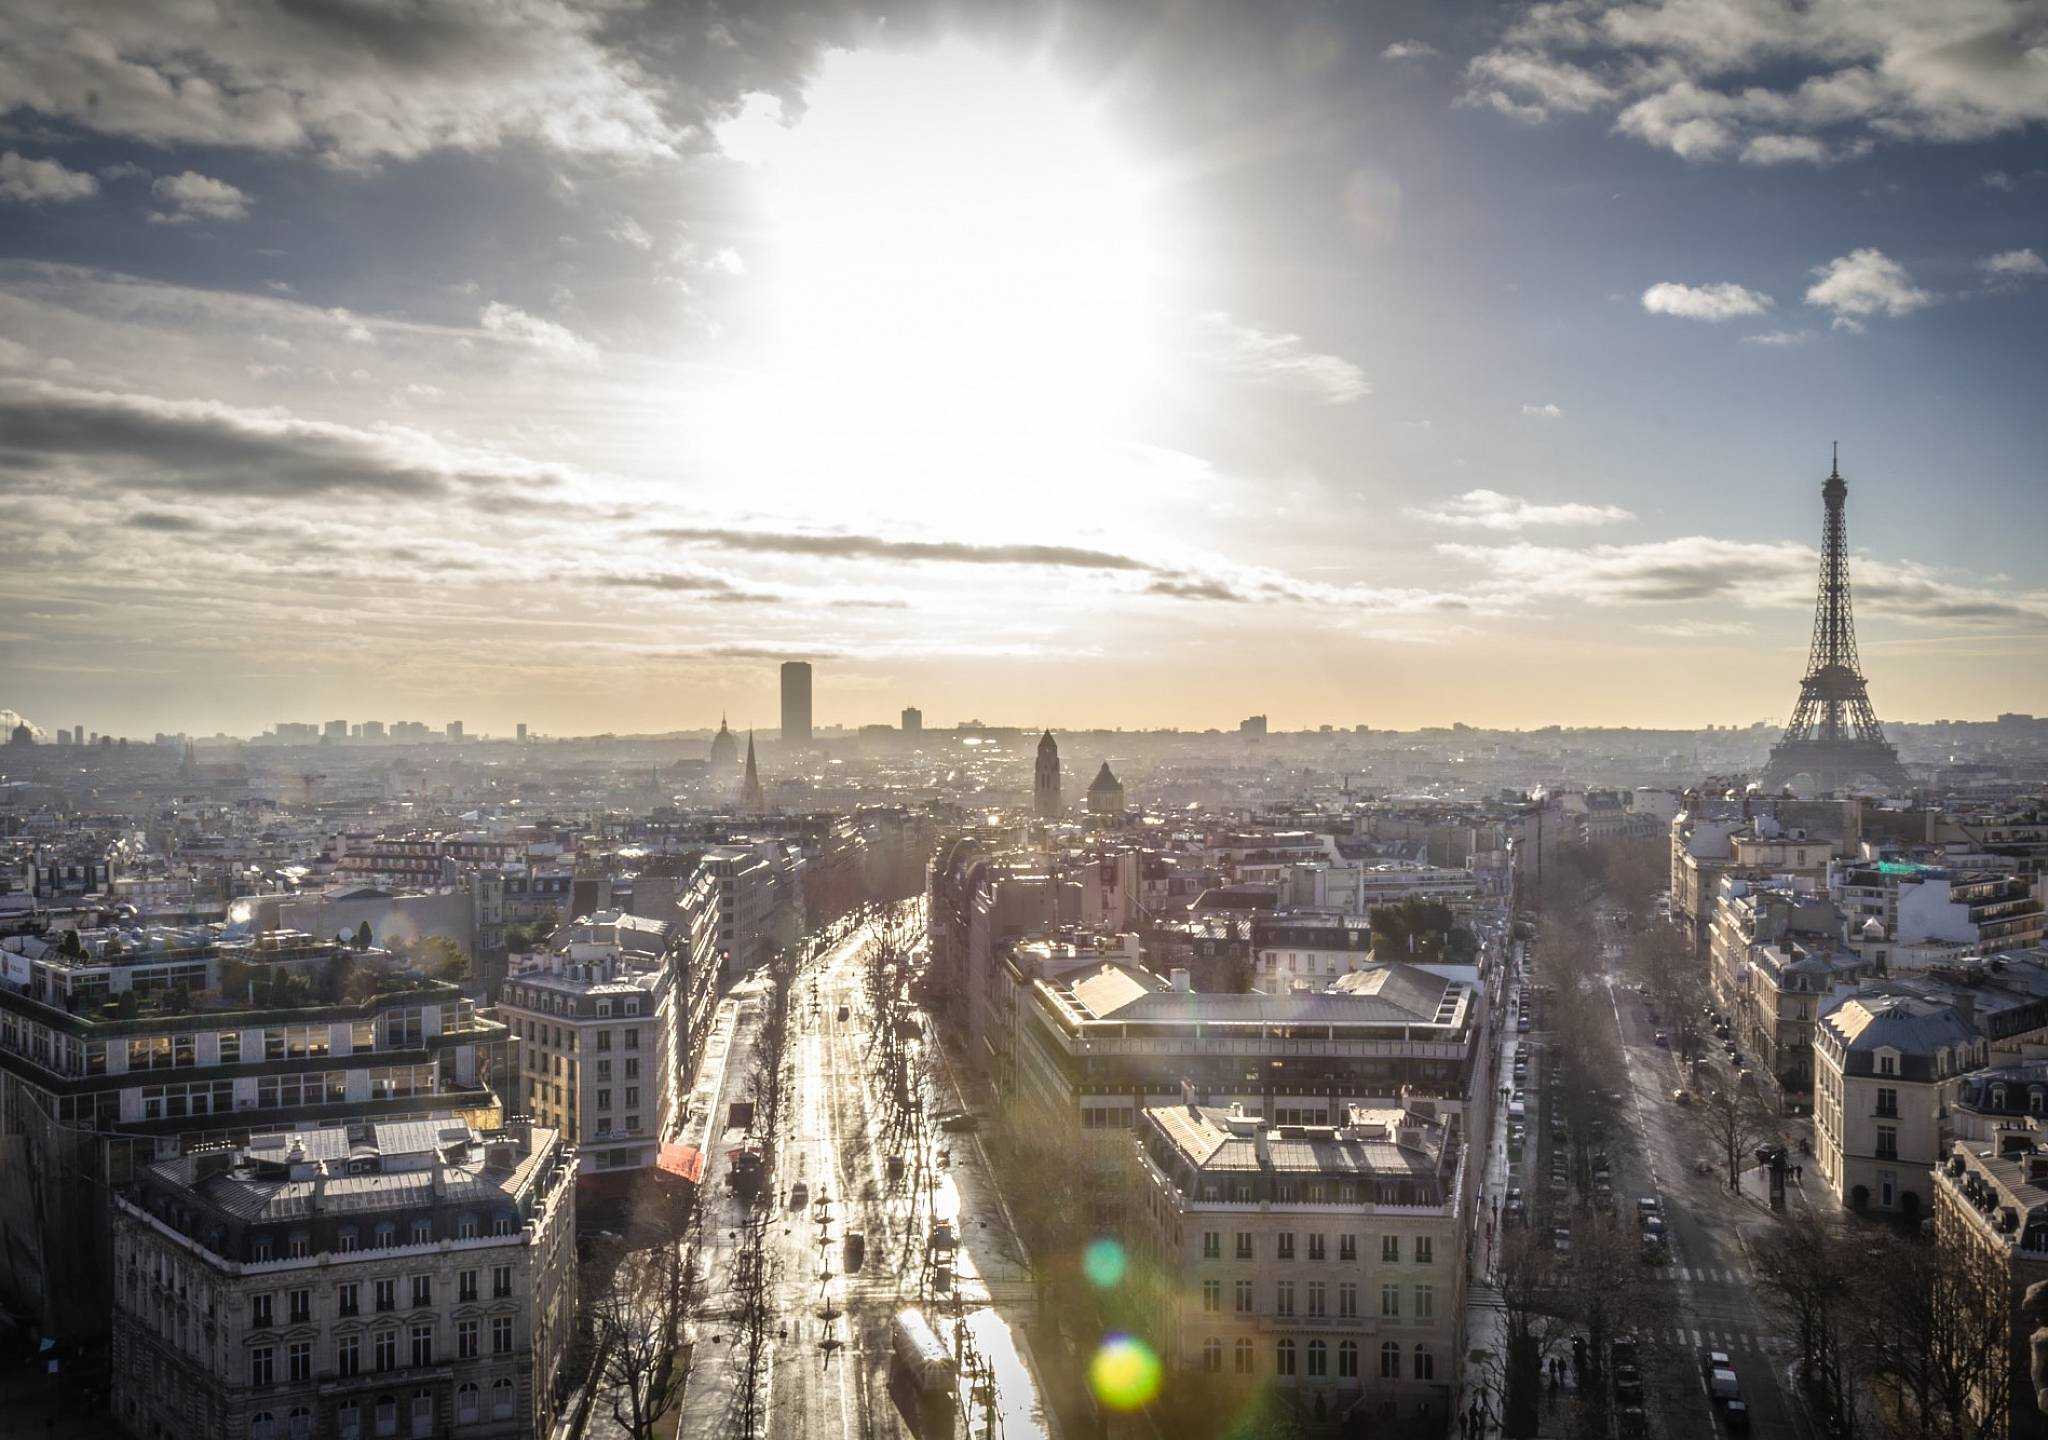 Hotel Plaza Elysees | Hotel in the heart of Paris near Champs-Elysees